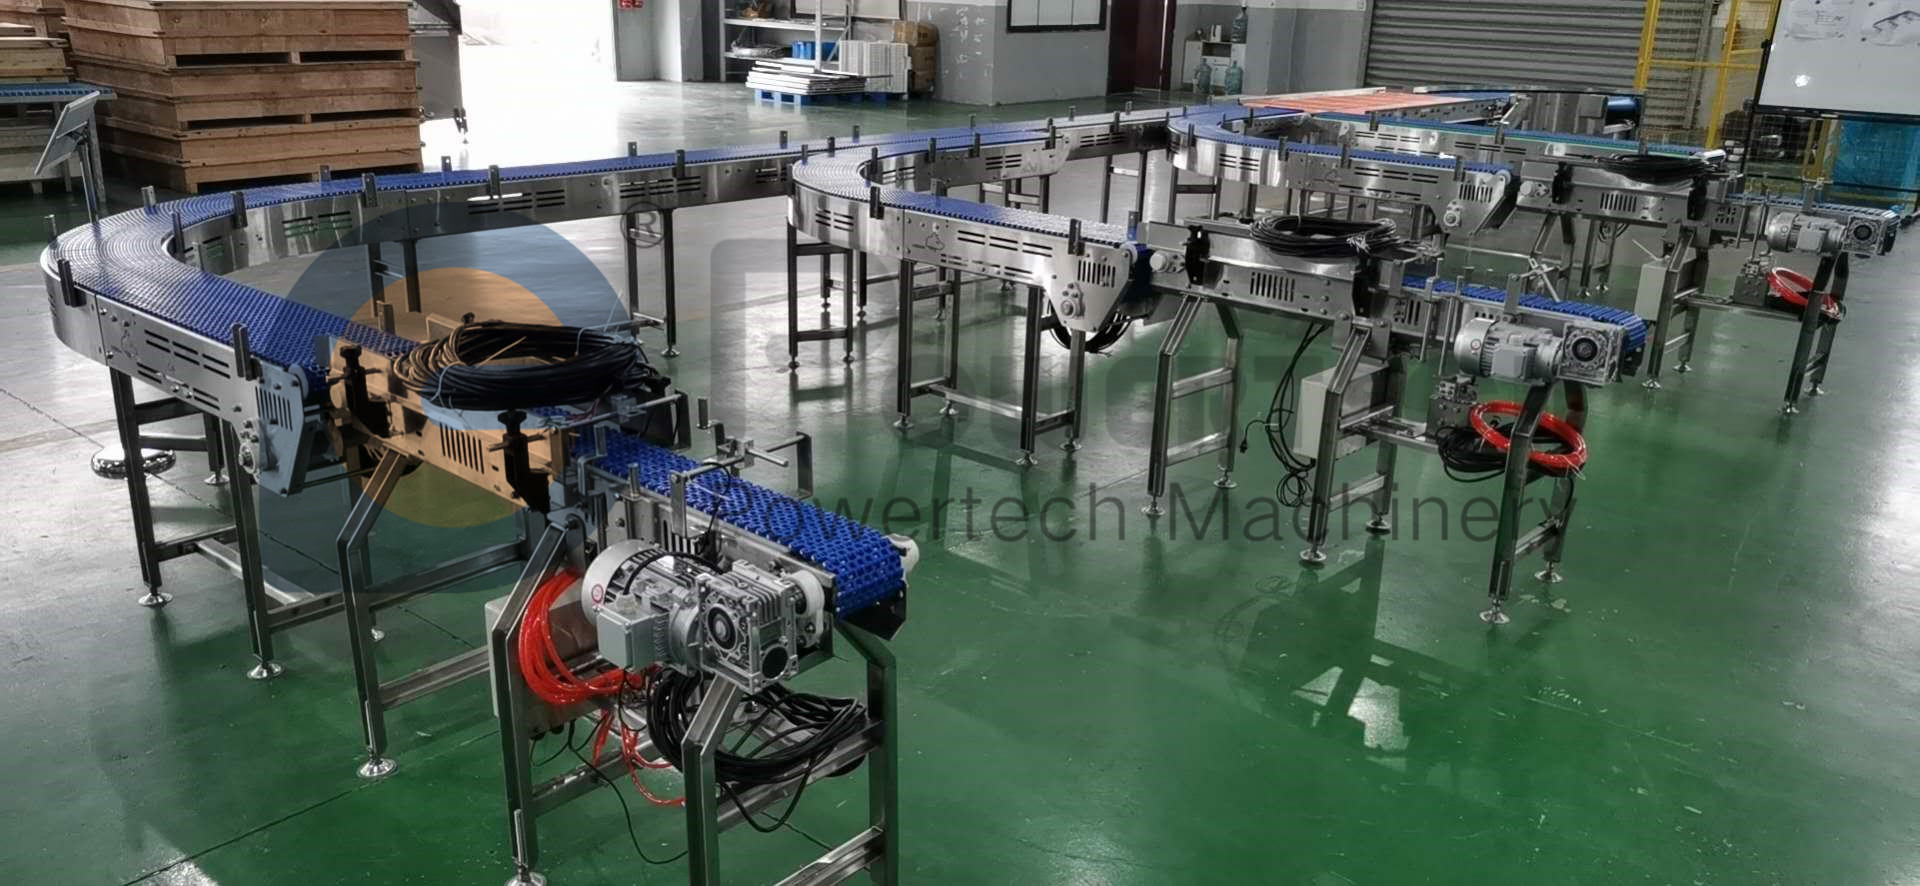 Multifunctional Automatic Wheaten Food Processing Line